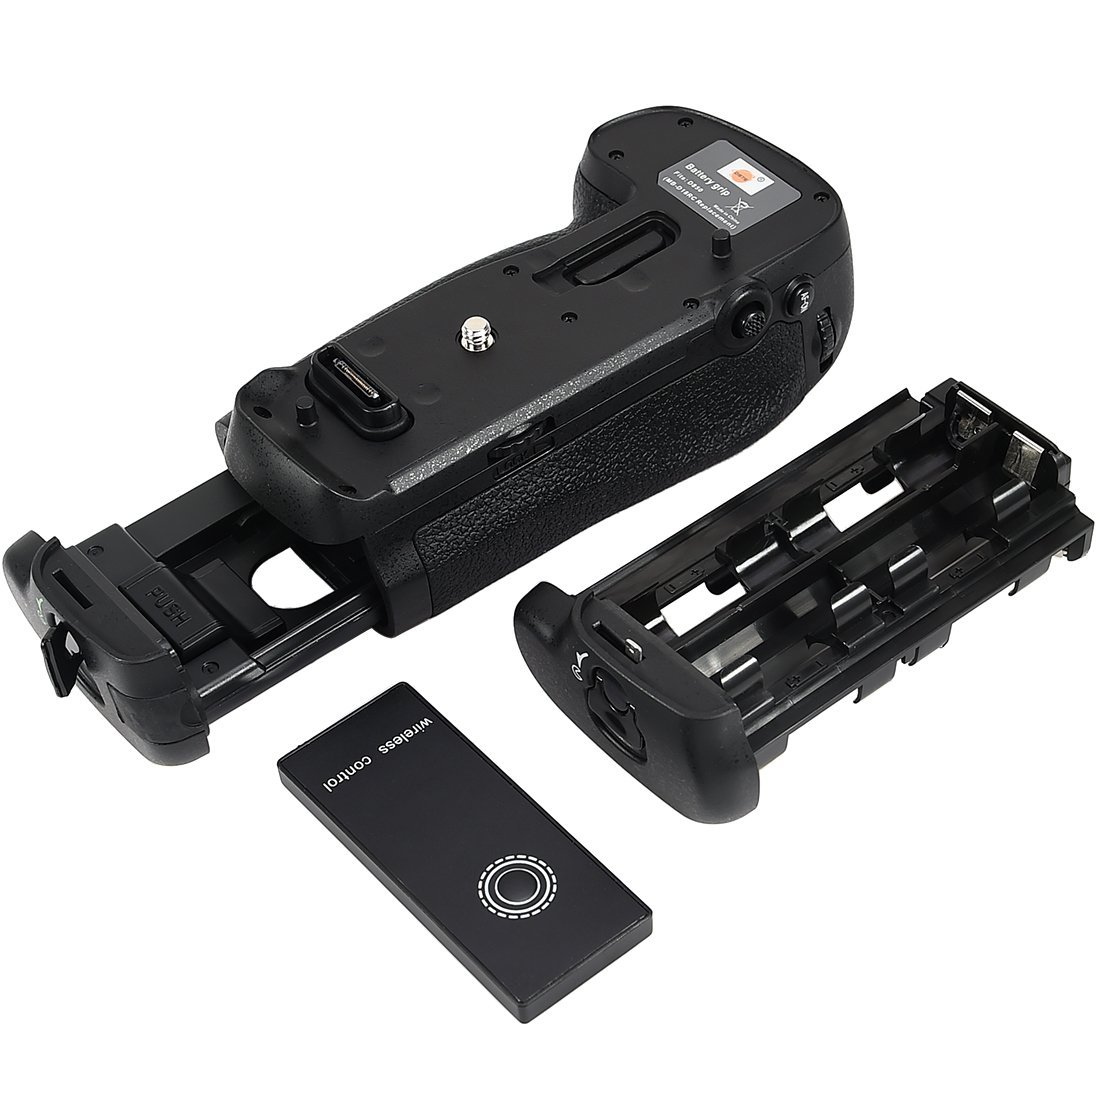 Kit Battery Grip MB-D18 para Nikon D850 + 2 baterias EN-EL15 + carregador